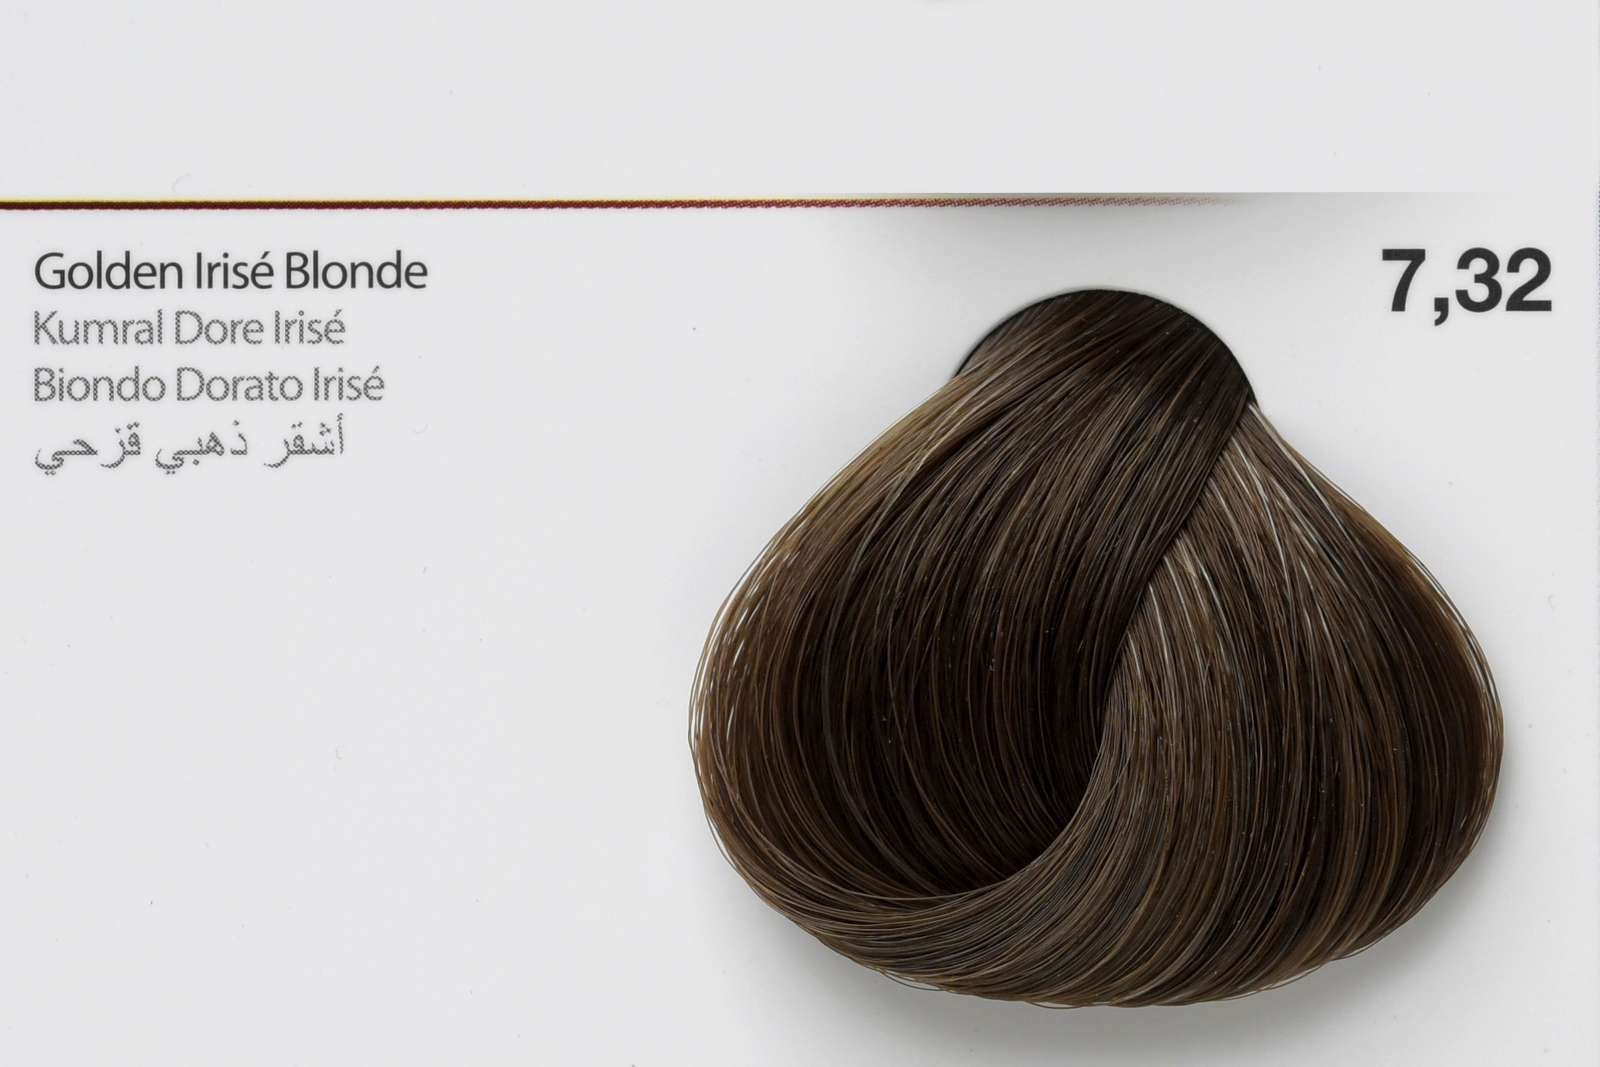 7,32 - Golden Irise Blonde-swatch